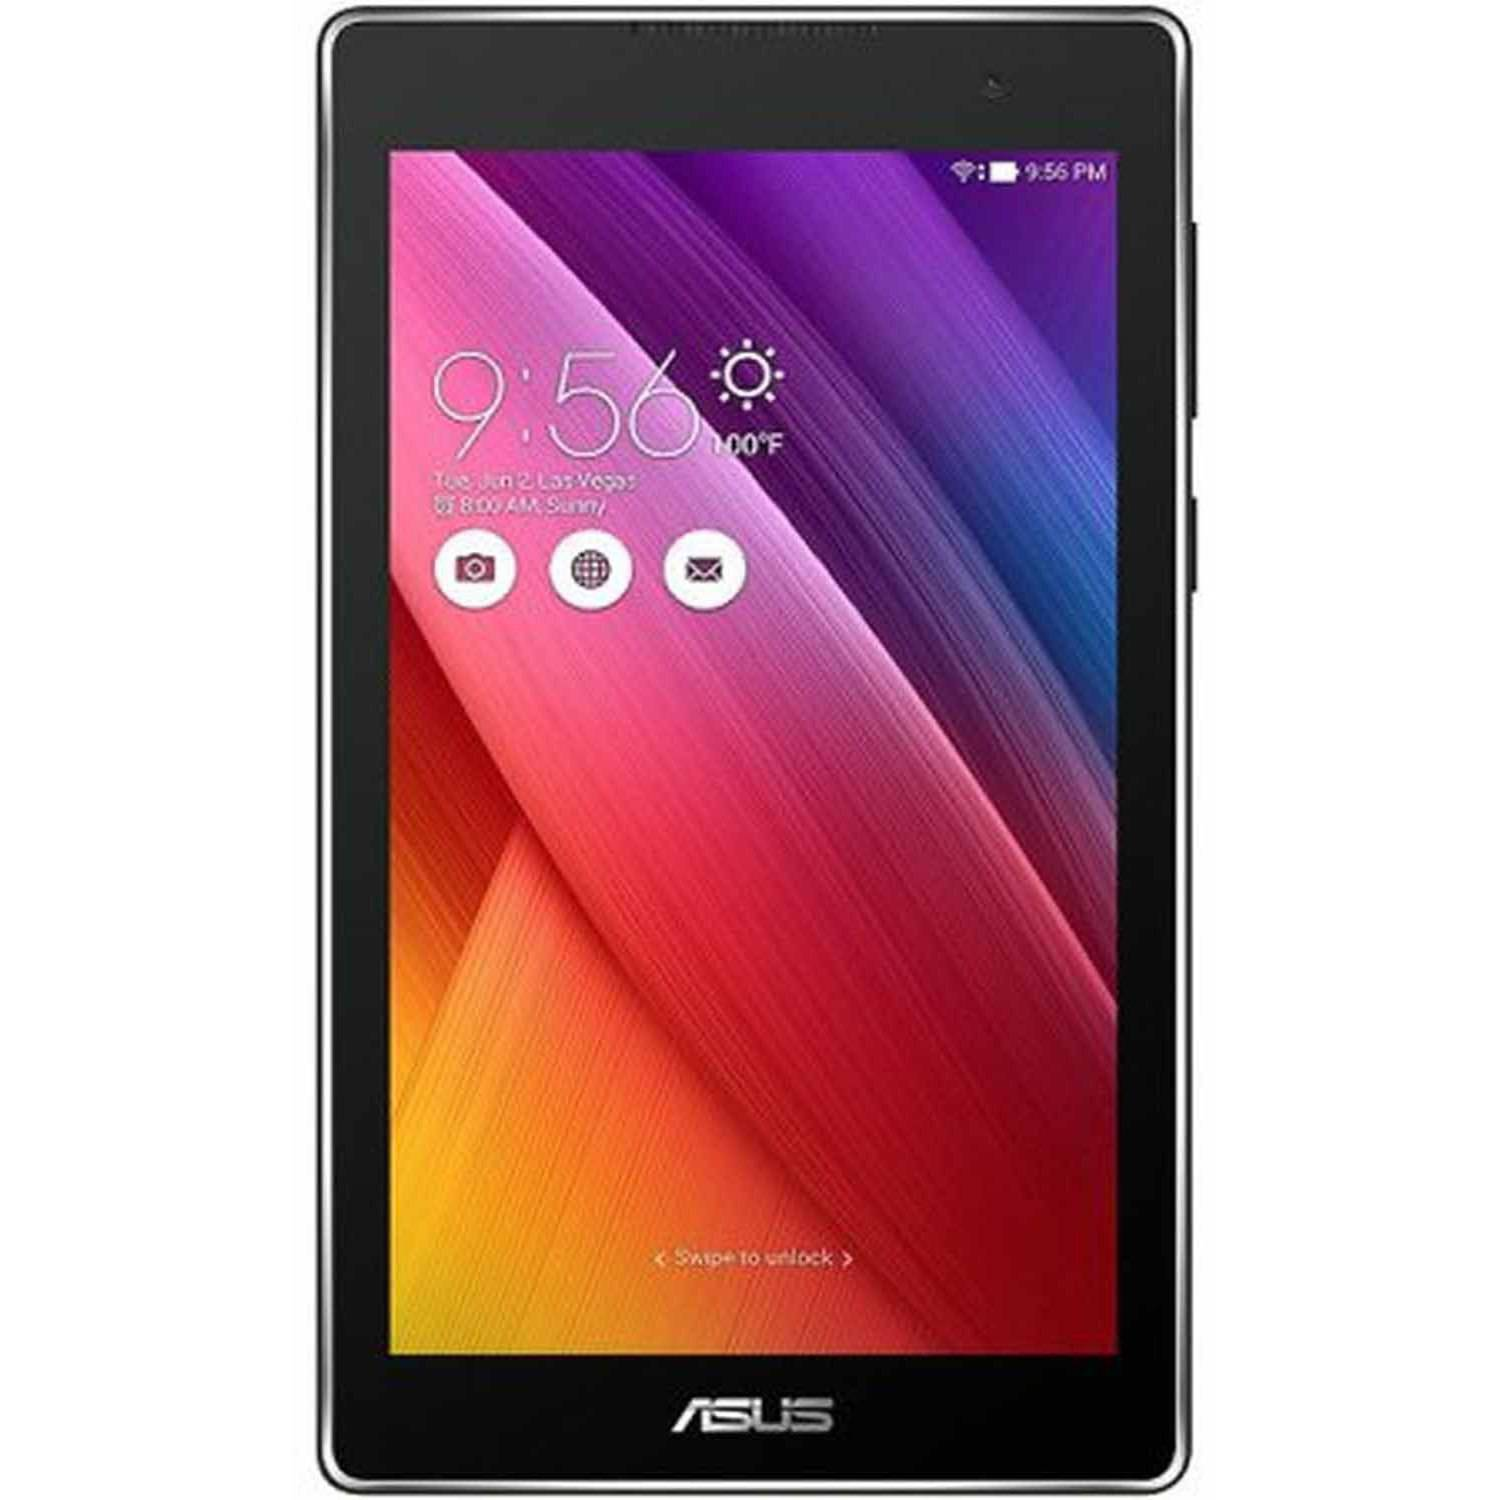 """ASUS Z170CA1BK 7"""" Tablet 16GB with WiFi Intel Atom X3-C3200rk Quad-Core Processor Featuring Android (5.1) Lollipop"""